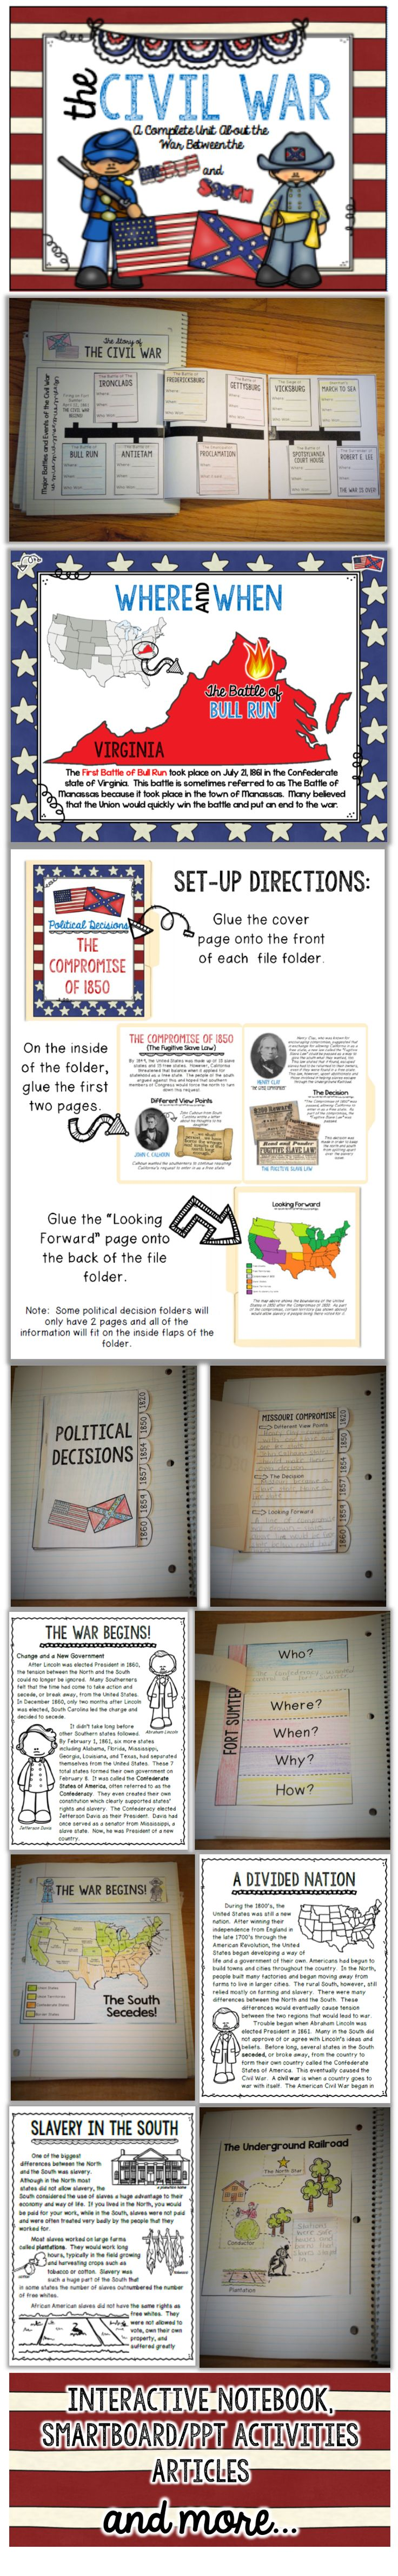 Teach your kids all about the Civil War with a complete unit ready to go!  Interactive notebook pages, learning centers, SB/PPT activities, games and MORE! $